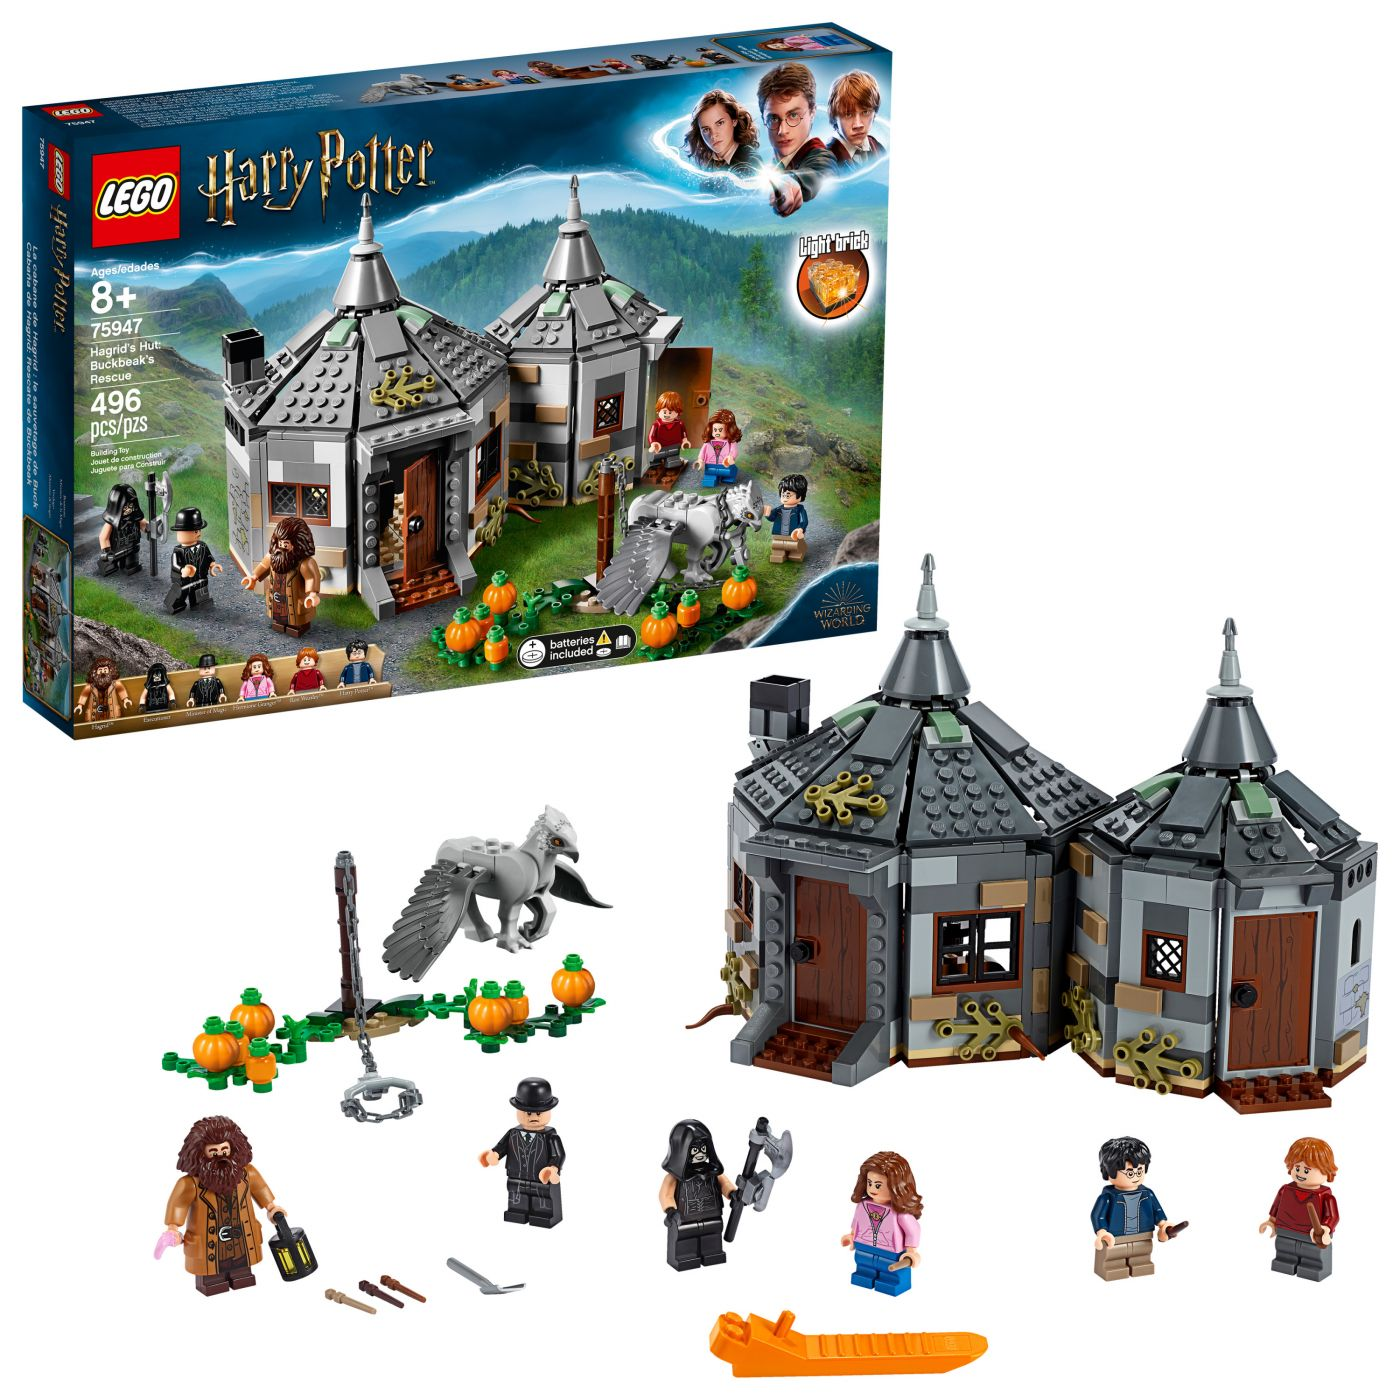 Конструктор LEGO Harry Potter Гарри Поттер 75947 Хижина Хагрида: спасение Клювокрыла